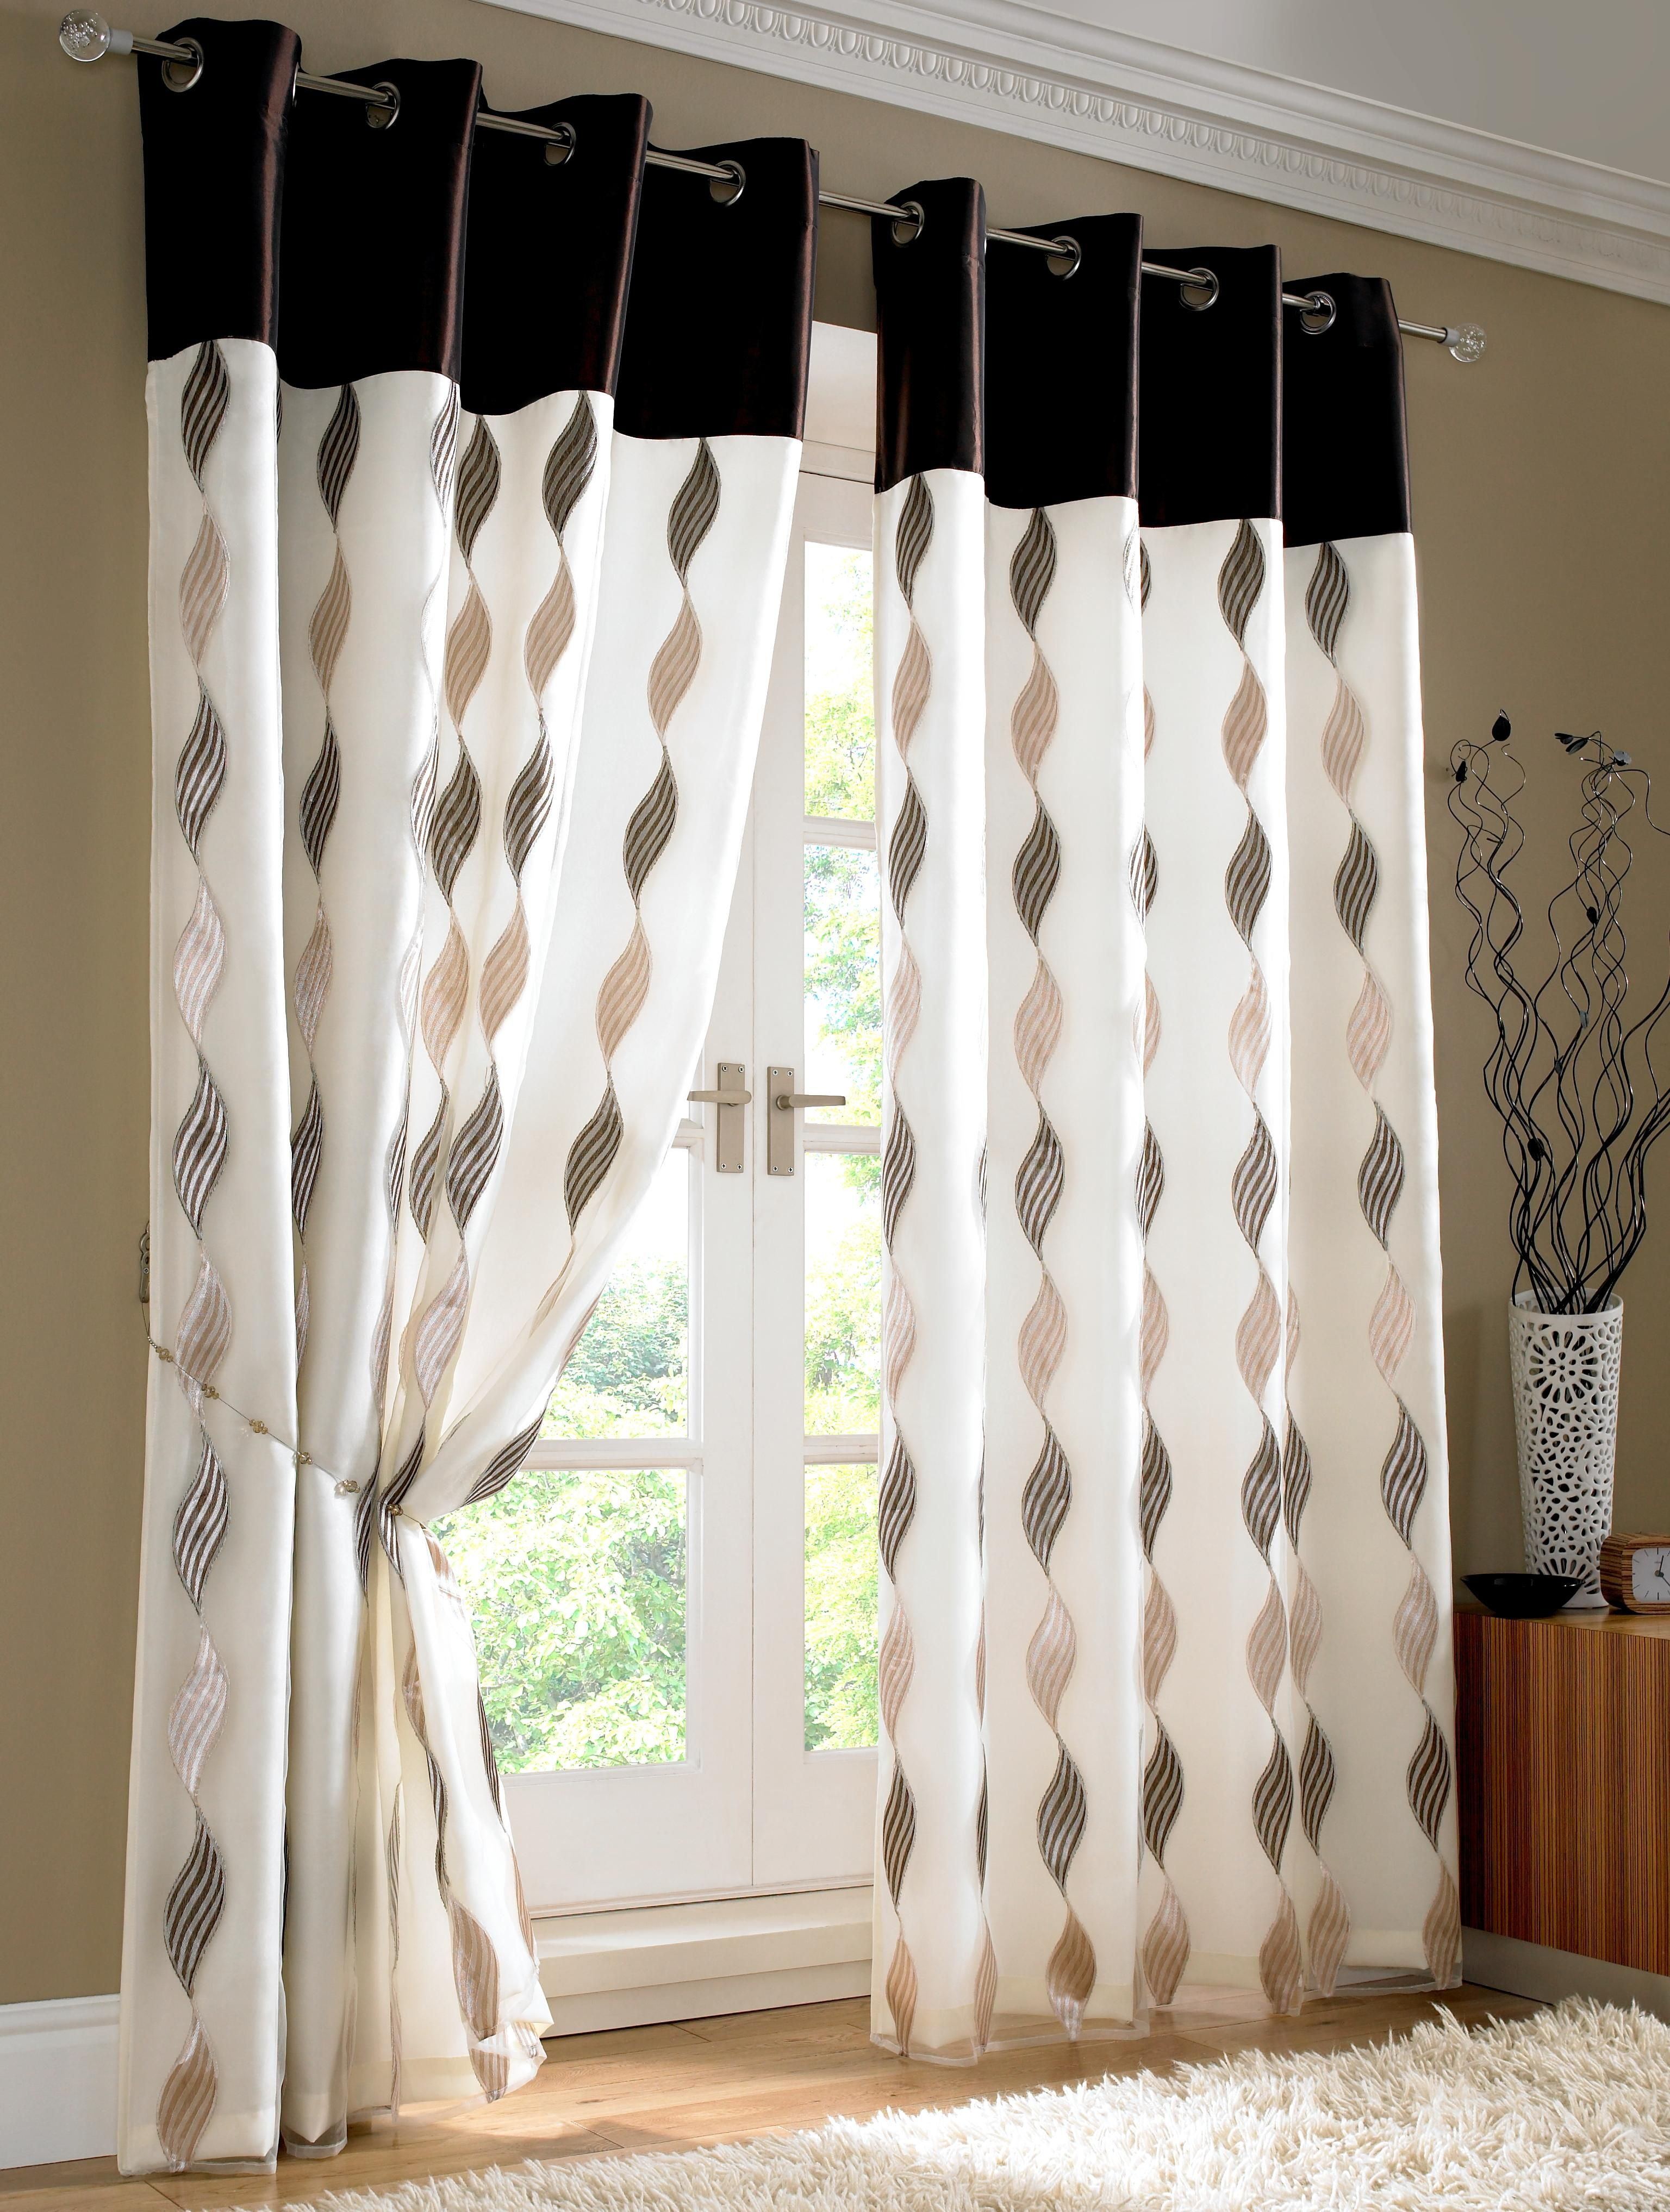 When buying Designer Curtains | Drapery Room Ideas